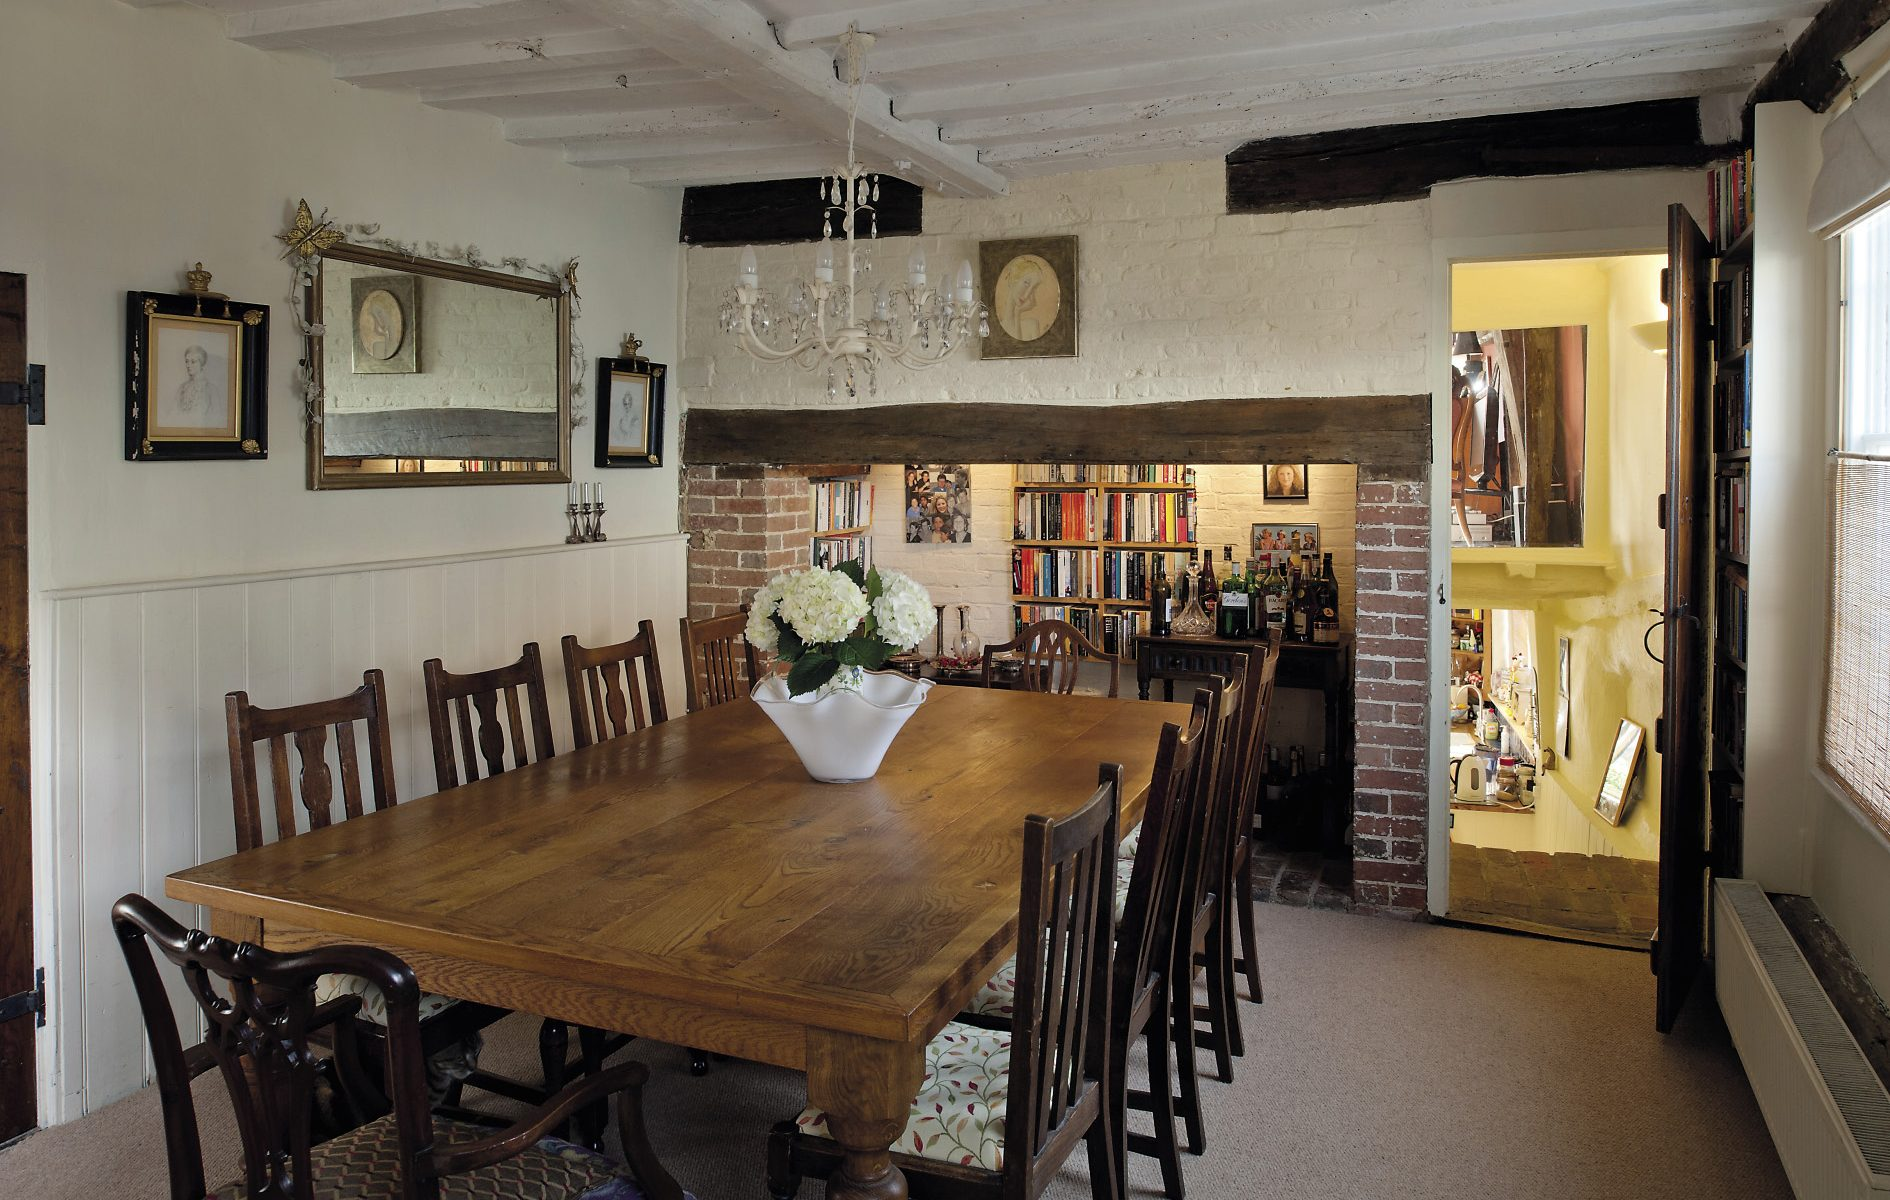 The dining room table, surrounded by Edwardian oak chairs that were inherited from Mary's family, is exceptionally generously proportioned and testifies to the couple's love of large, sociable gatherings